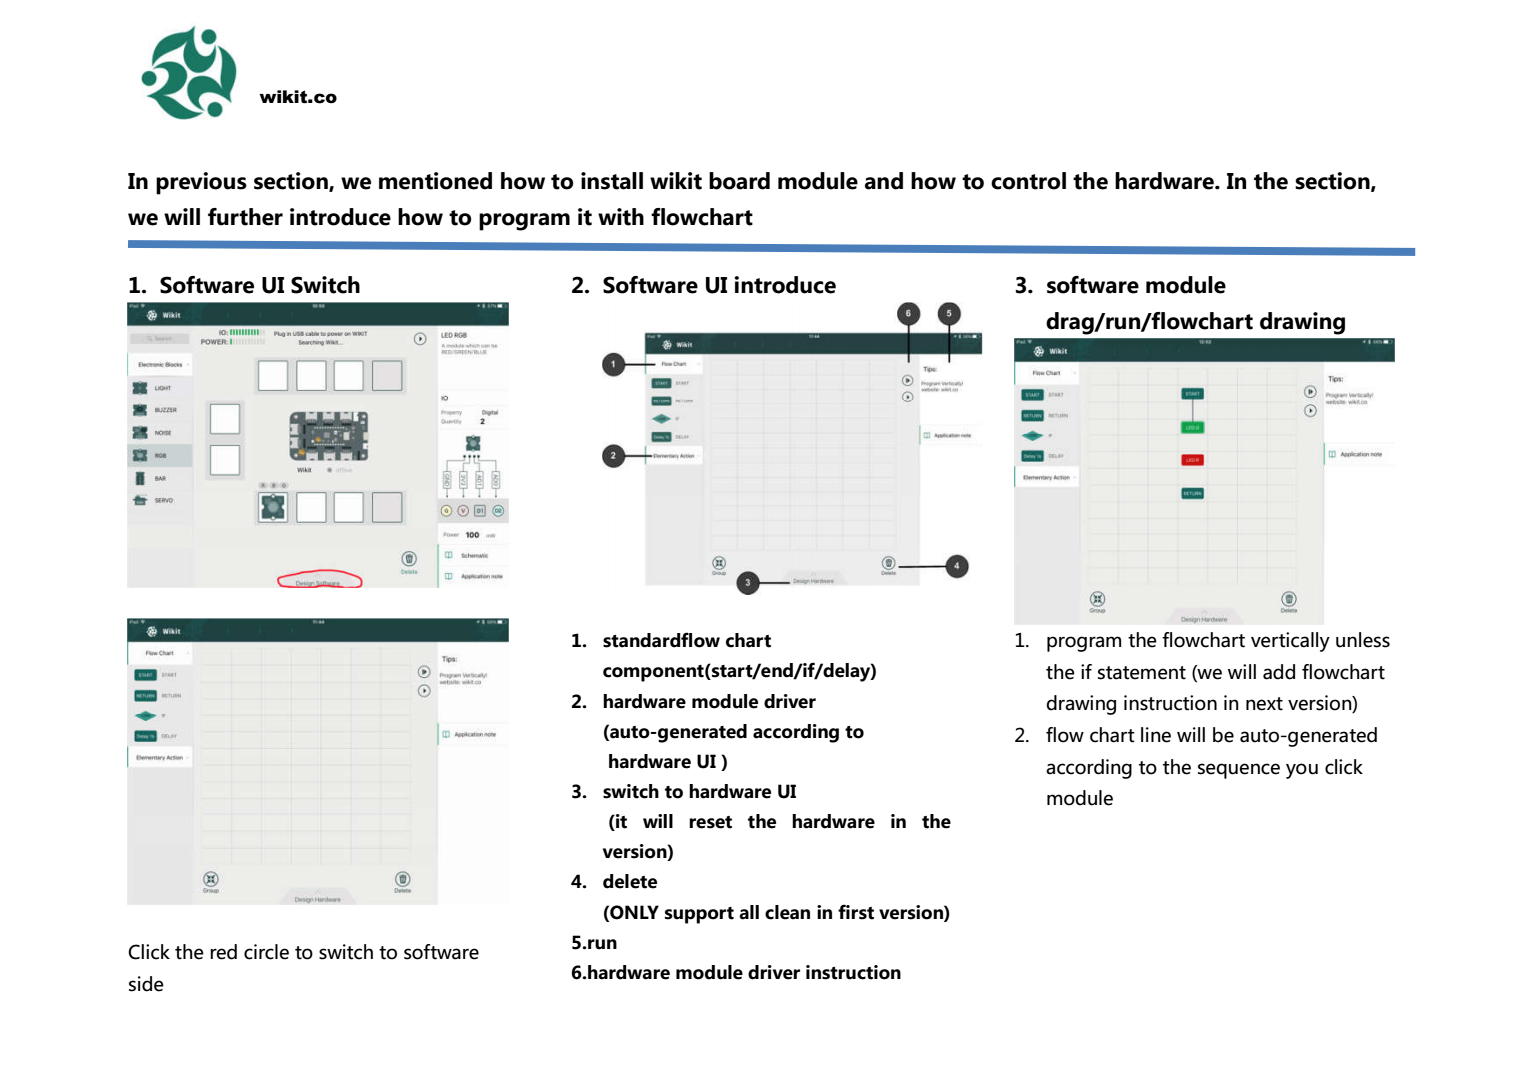 Software for flowchart drawing create a flowchart flowchart task scheme diagram without wikit board trial version instruction will in the next step nvjuhfo Gallery